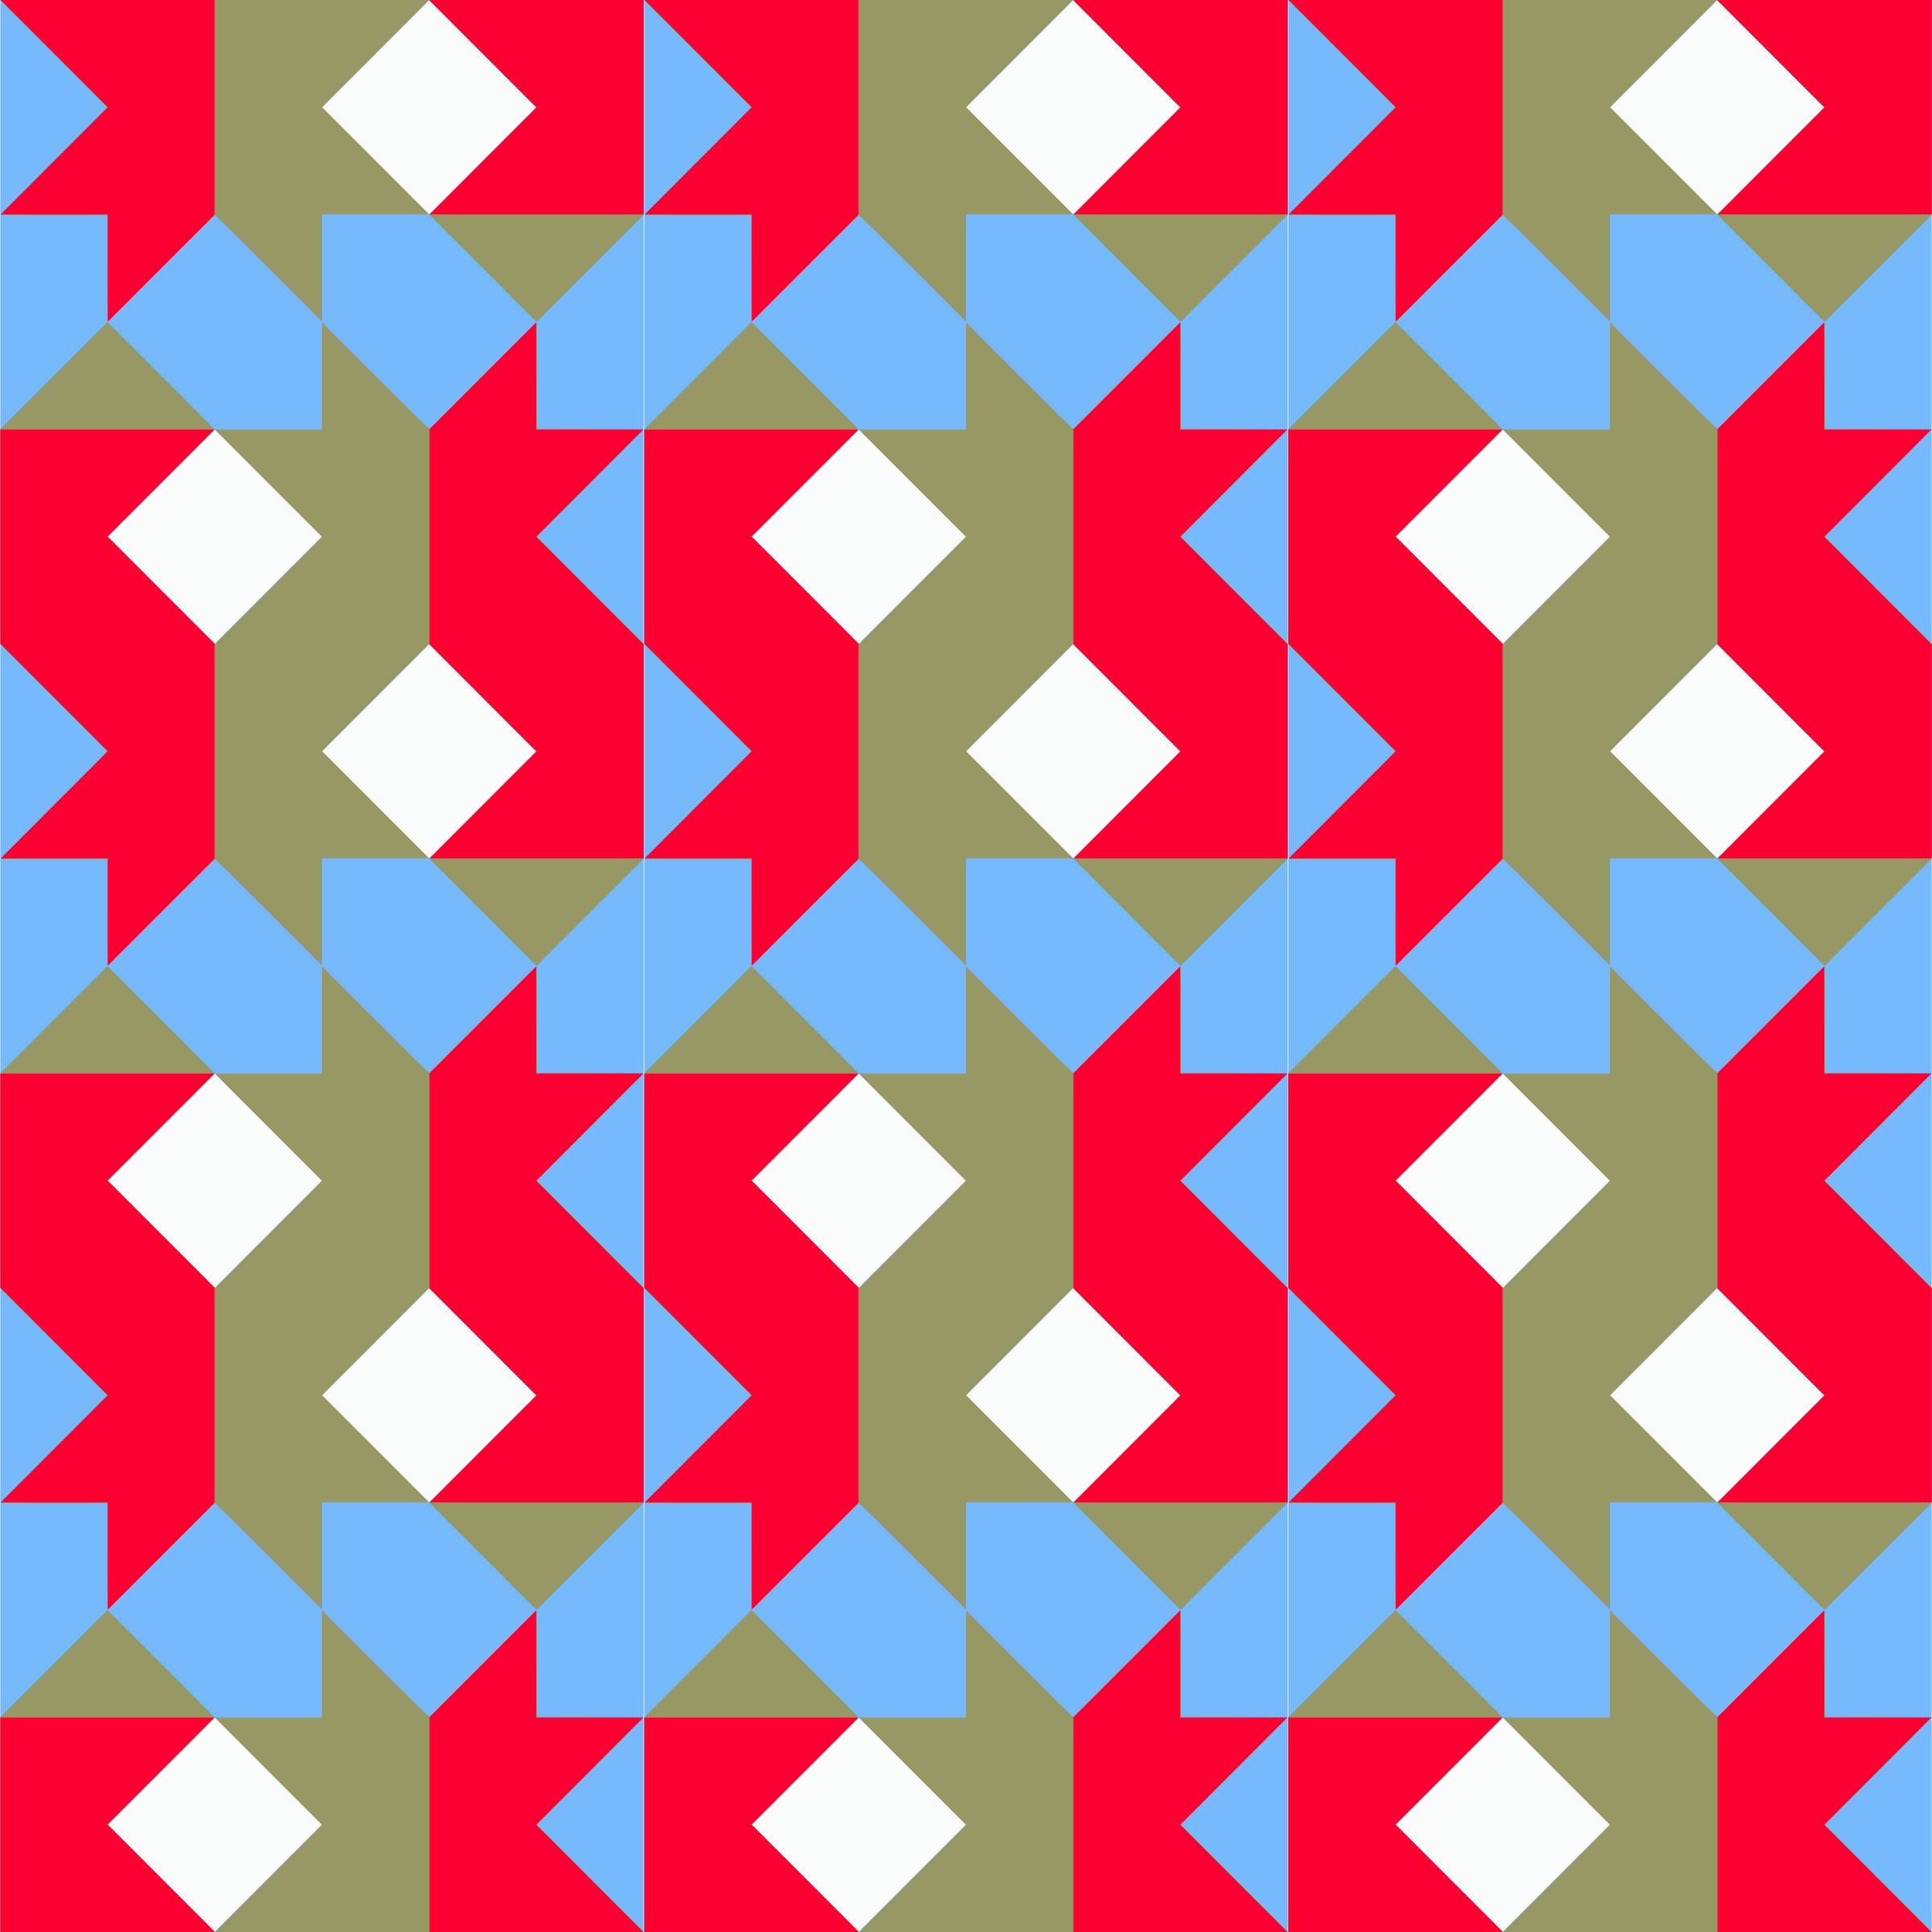 Seamless-pattern-01 by yamachem